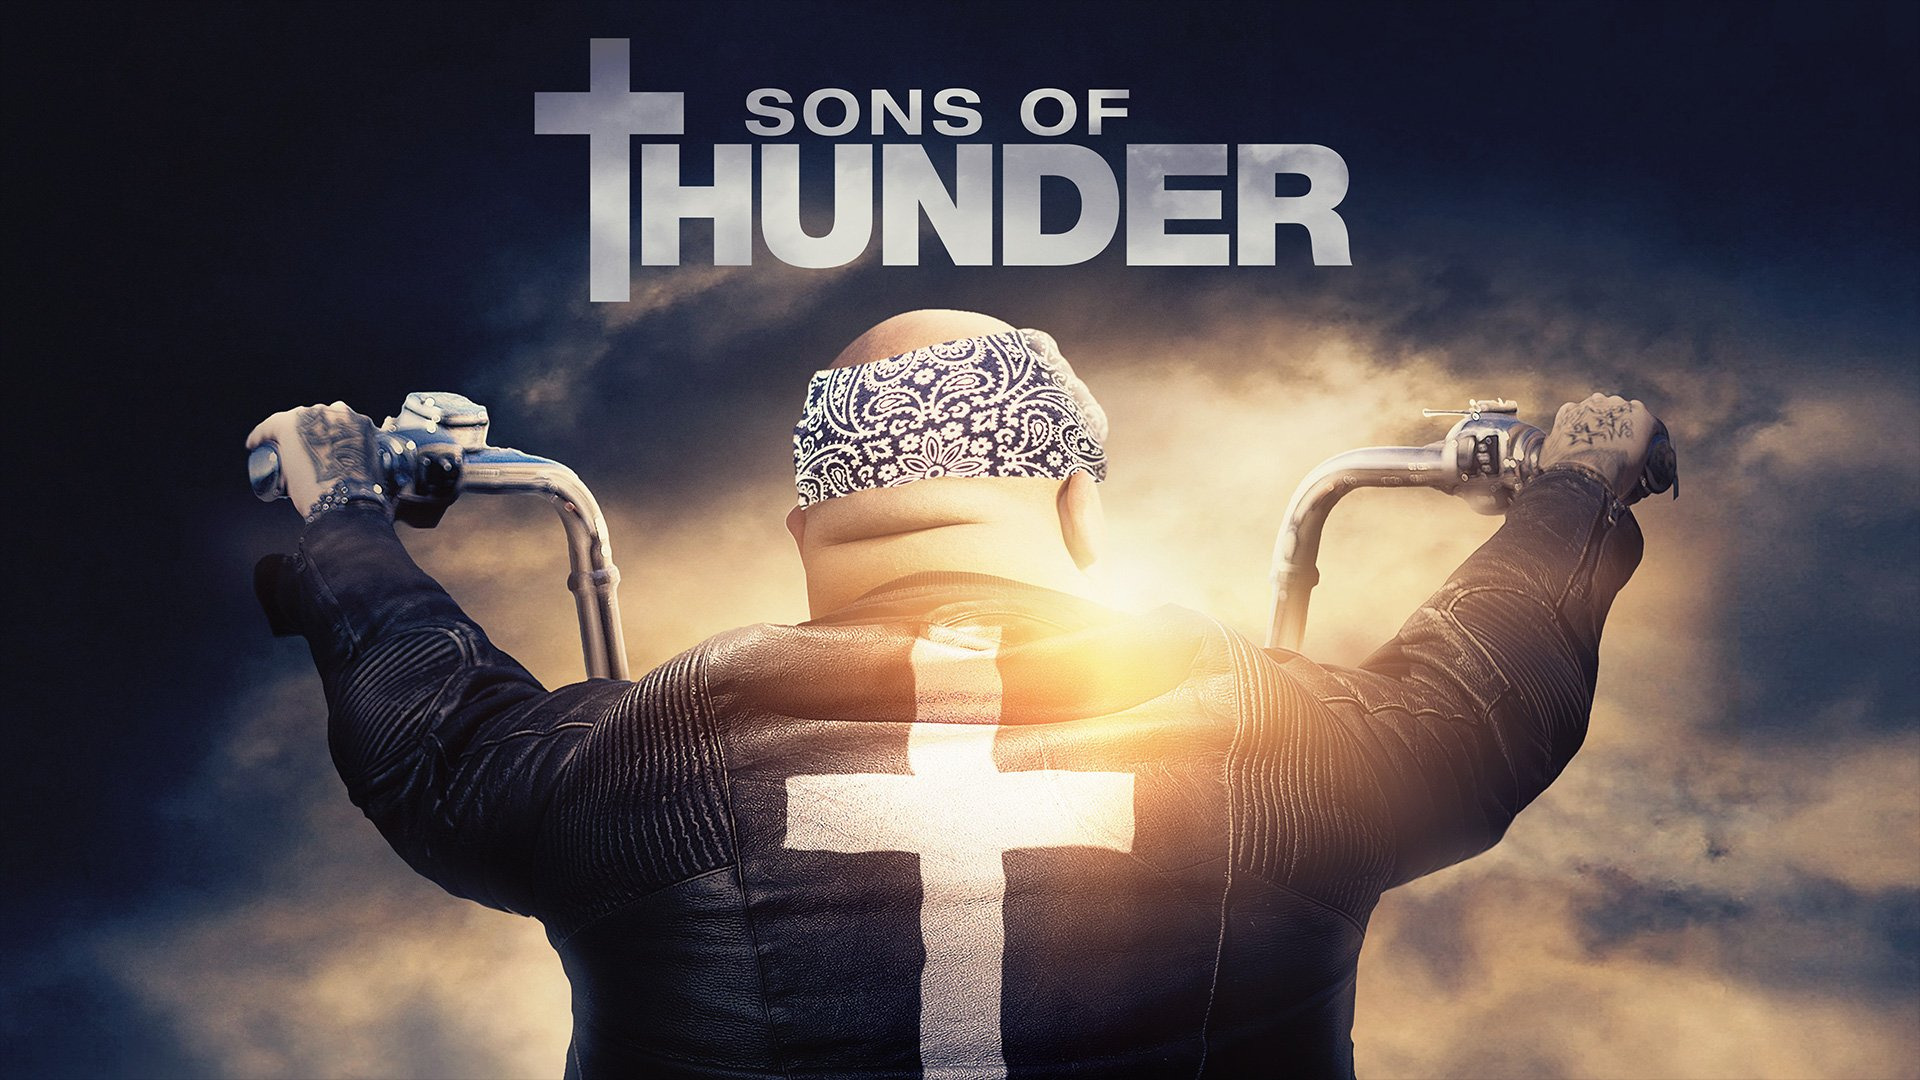 Show Sons of Thunder